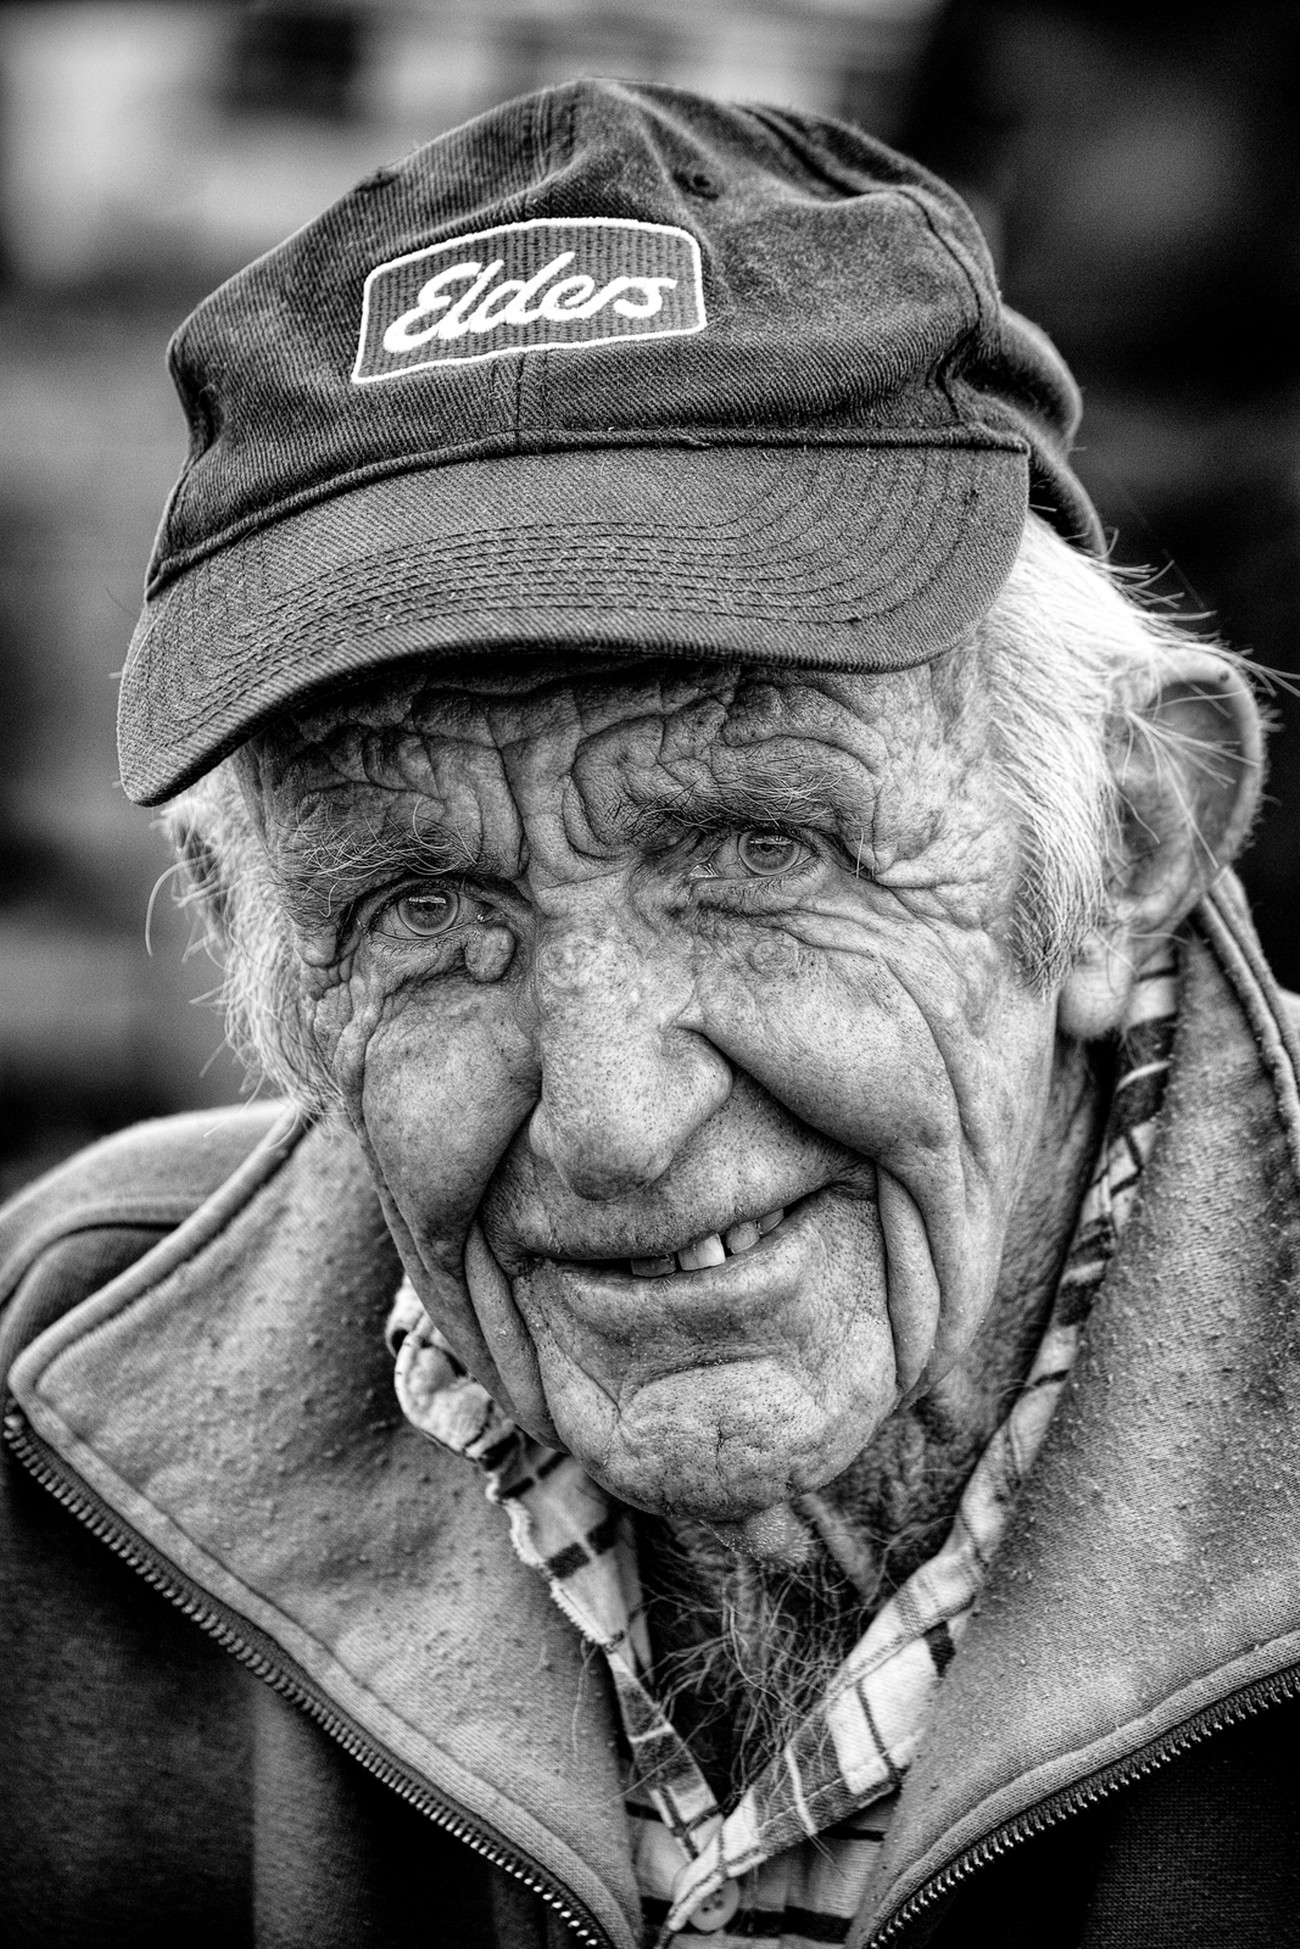 This Old Gentleman has spent his life working the land.